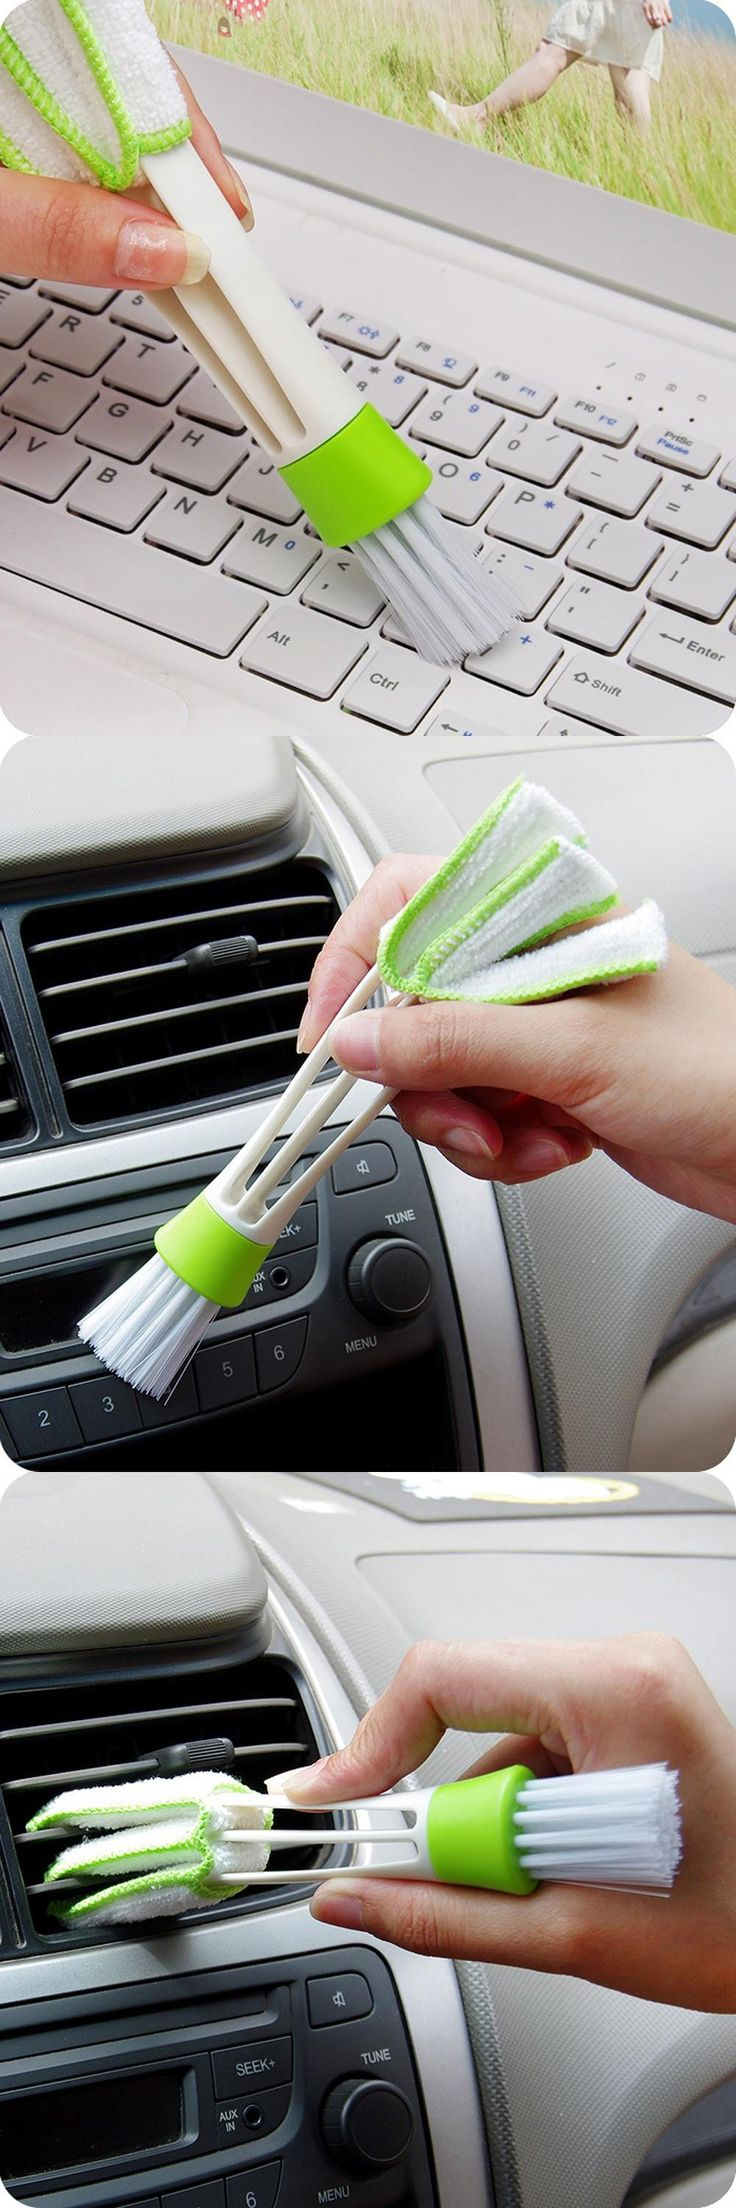 [Visit to Buy] 2017 New Keyboard Dust Collector Computer Clean Tools Window Blinds Cleaner Levert Dropship Free Shipping car cleaning tool #555 #Advertisement